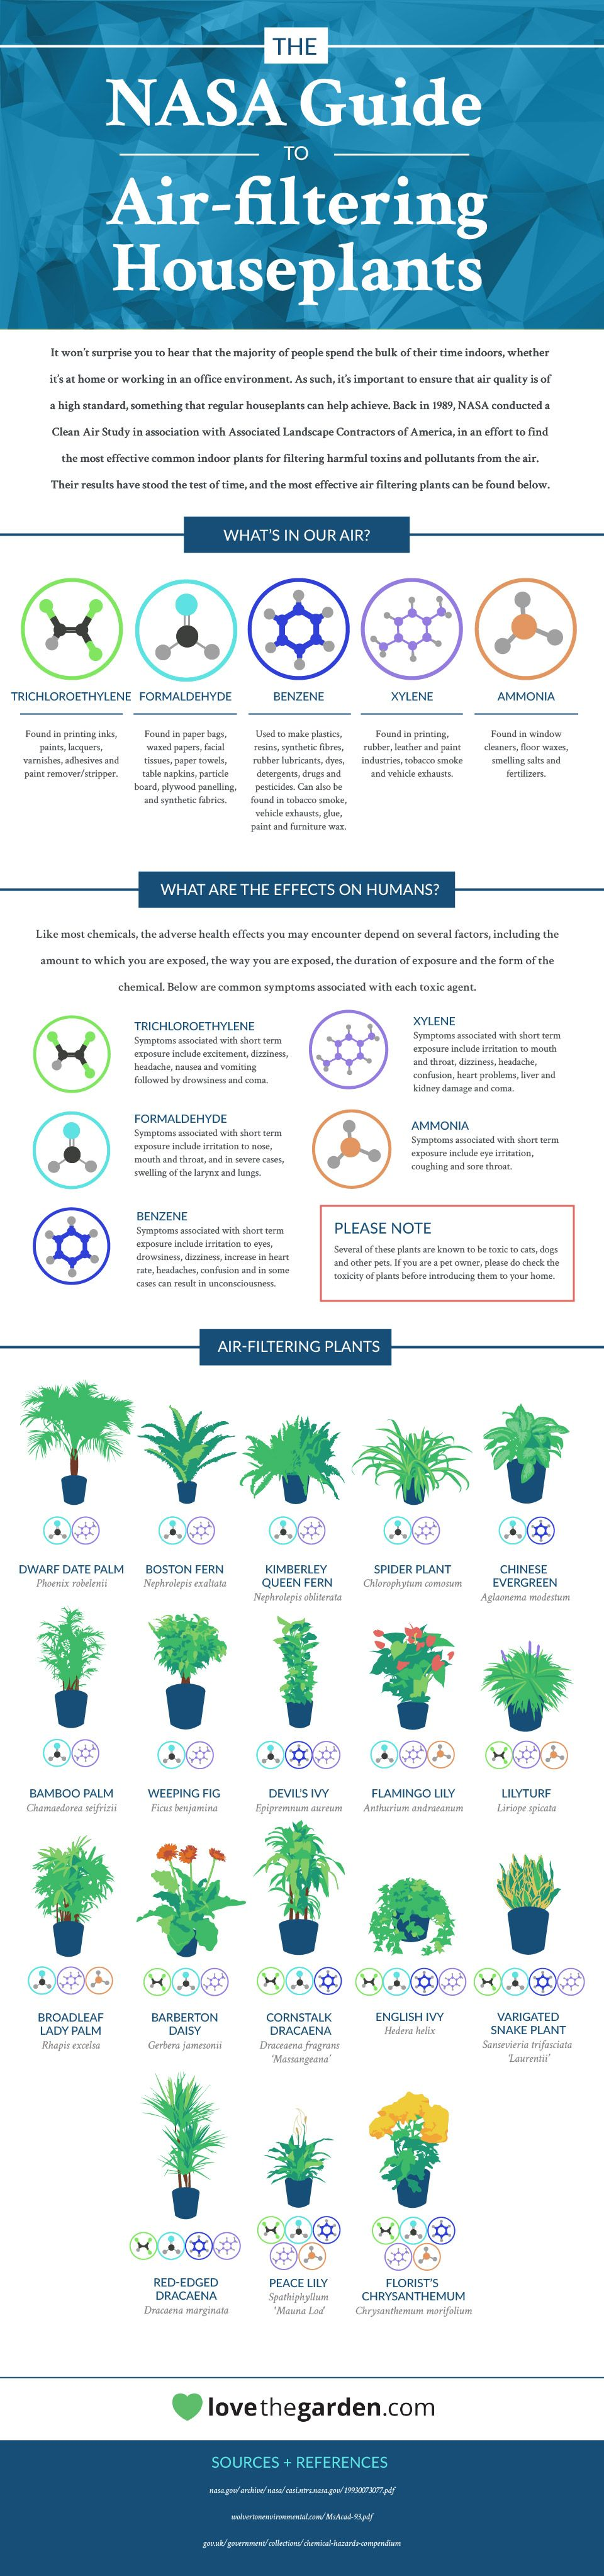 The NASA Guide to Air-Filtering Houseplants